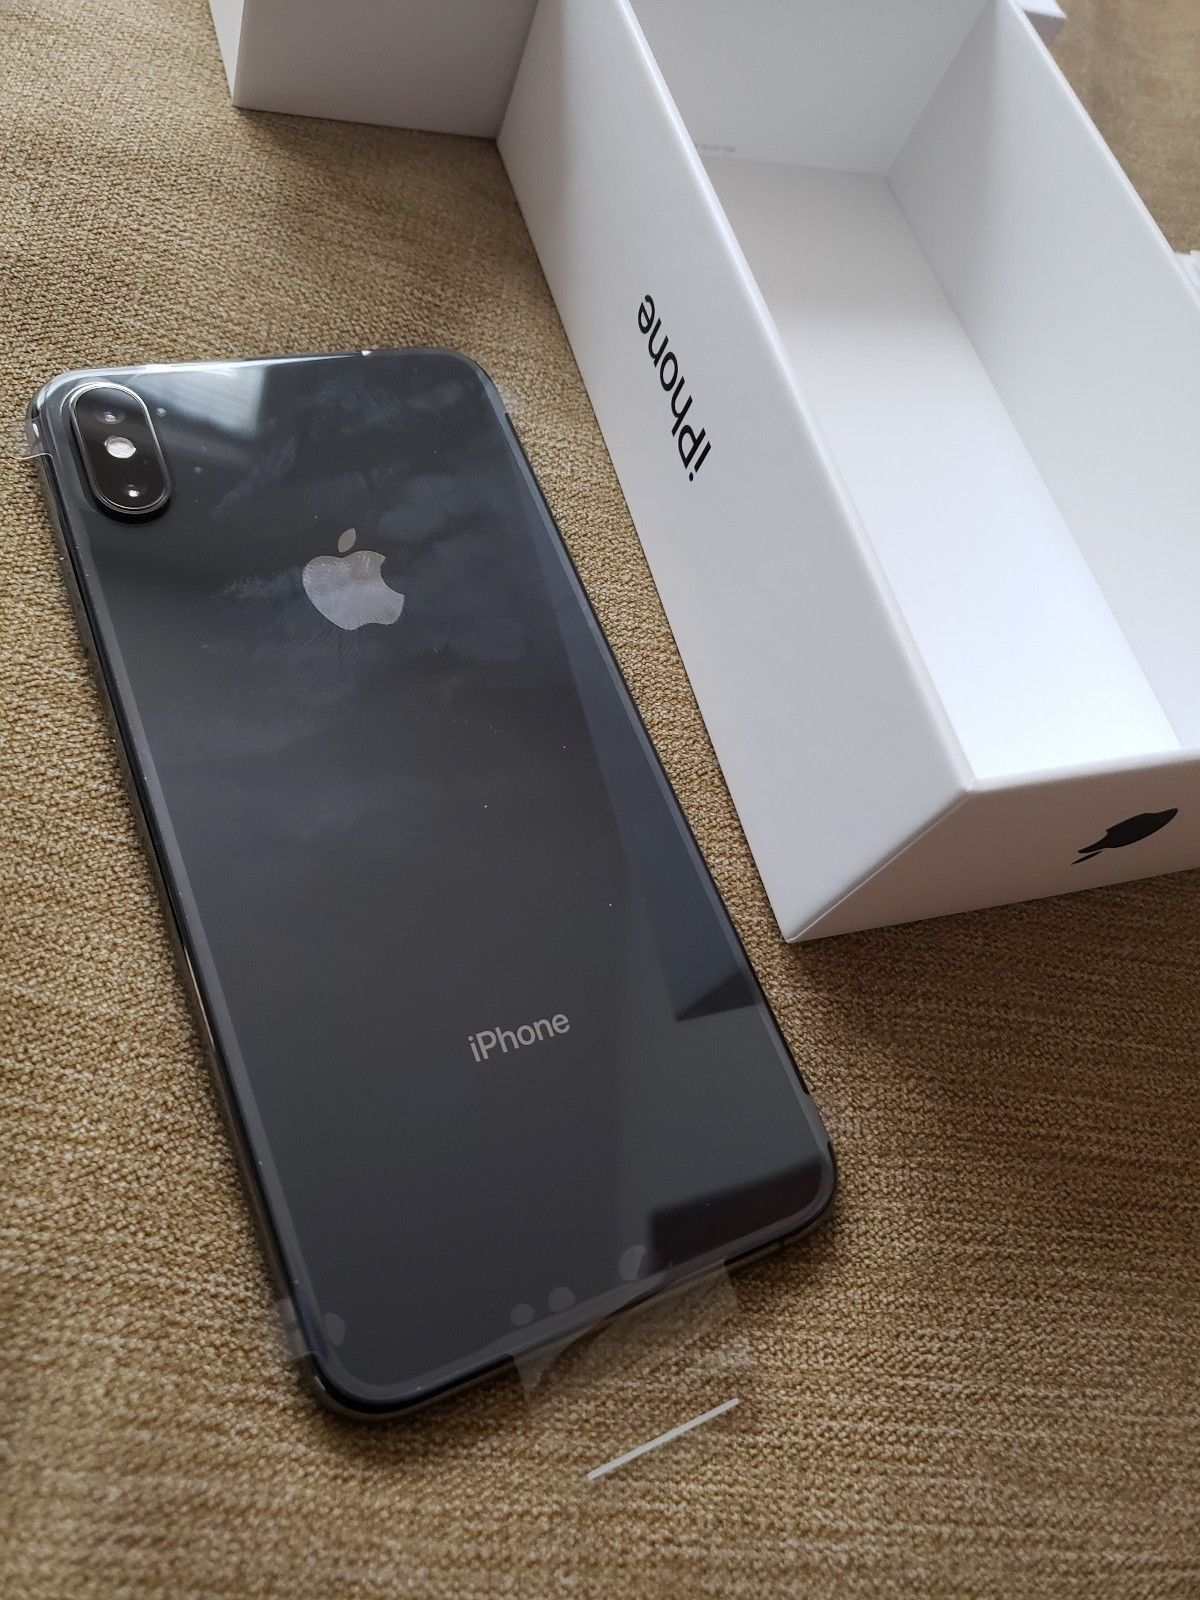 Apple Iphone Xs Max 64gb Space Gray Unlocked By Sim A1921 Cdma Gsm 1000 0 Iphone Xs Max Space Gre Ipad Wifi Iphone Accessories Iphone Phone Cases